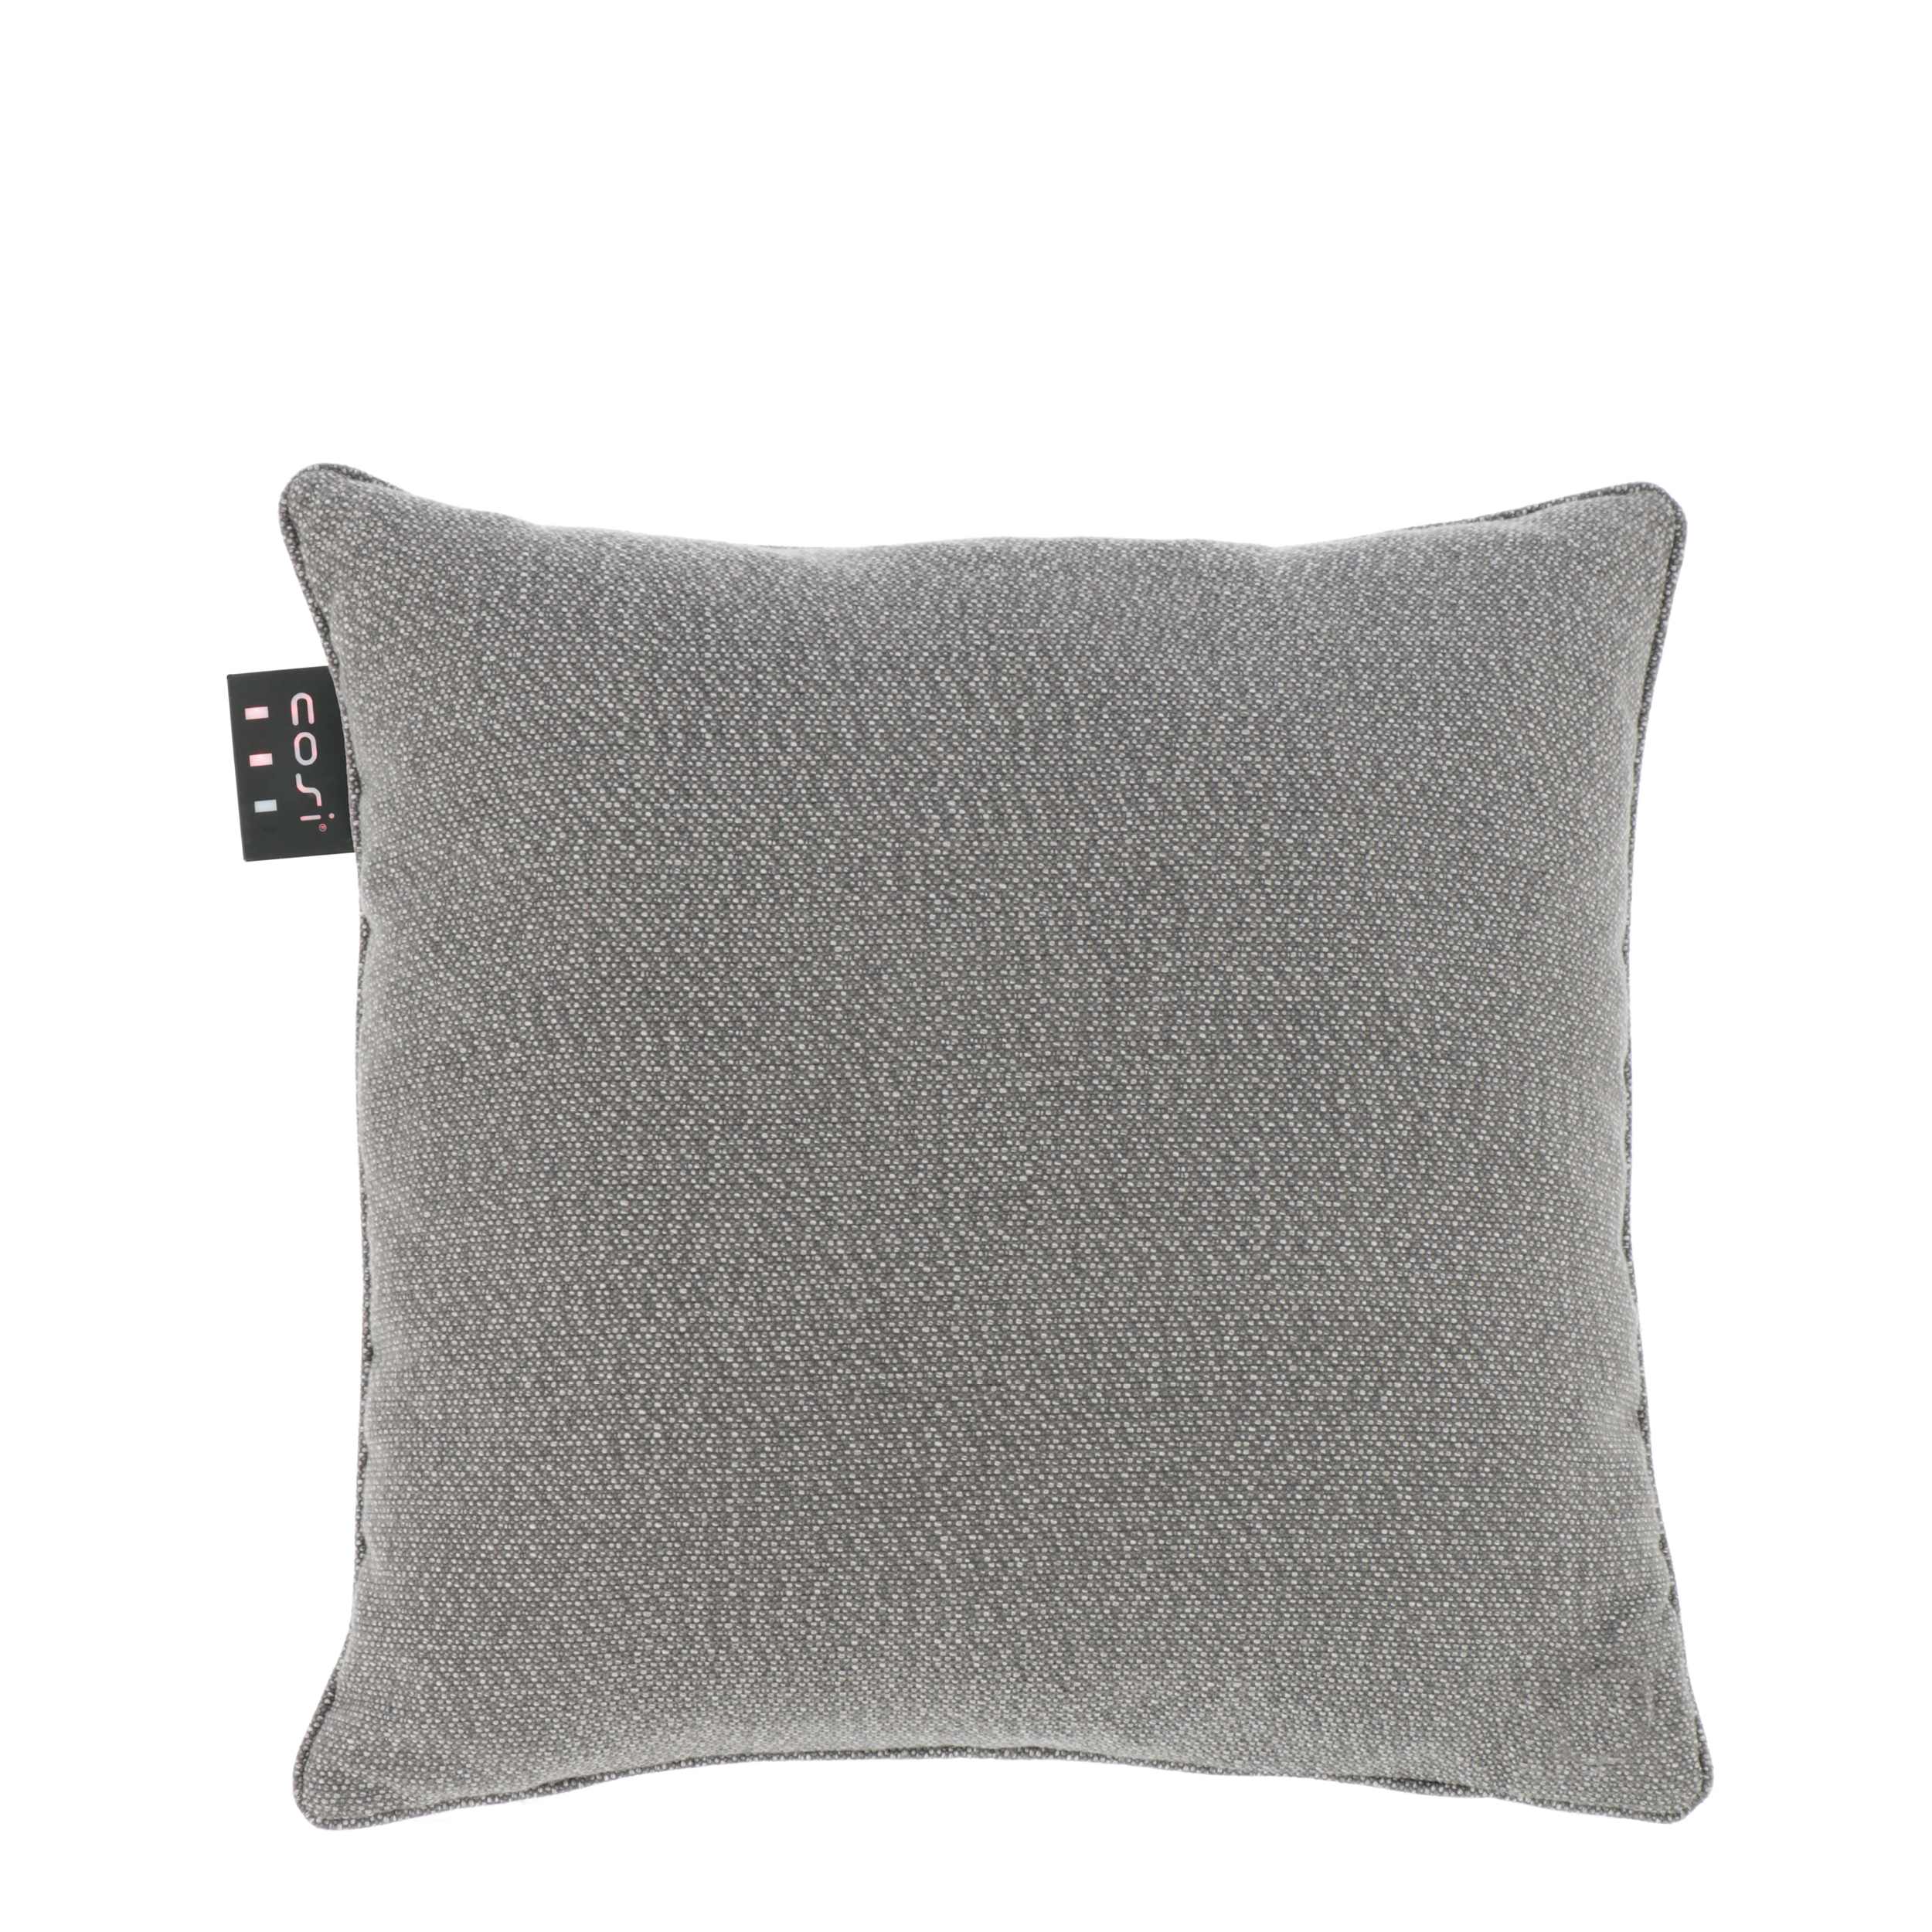 Cosipillow m/varme – knitted 50x50cm